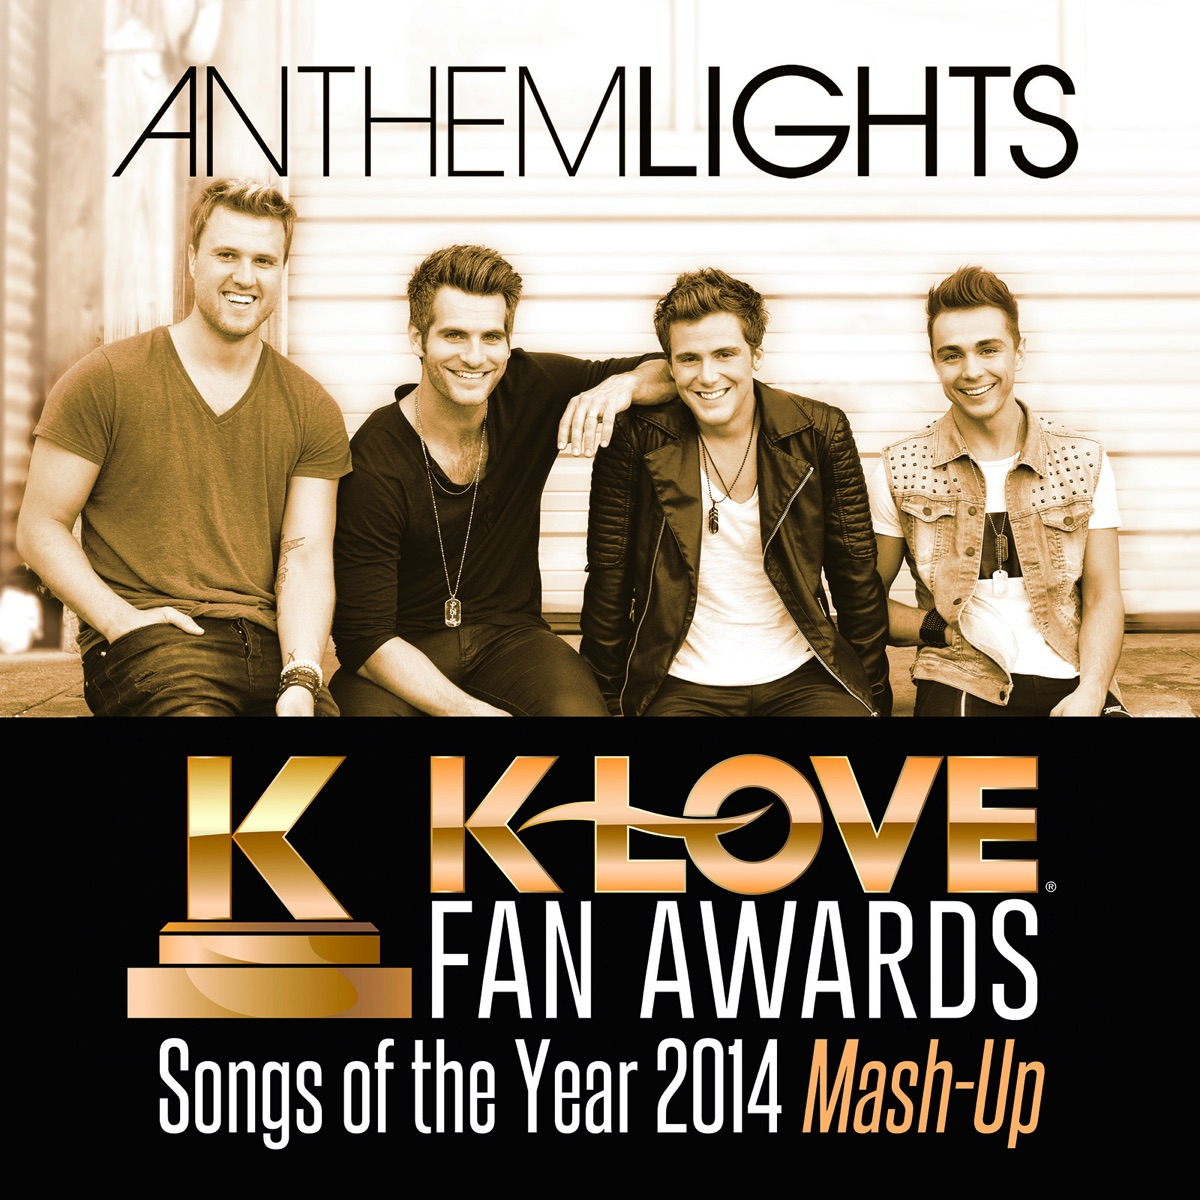 2 Anthem Lights Covers Part II ...